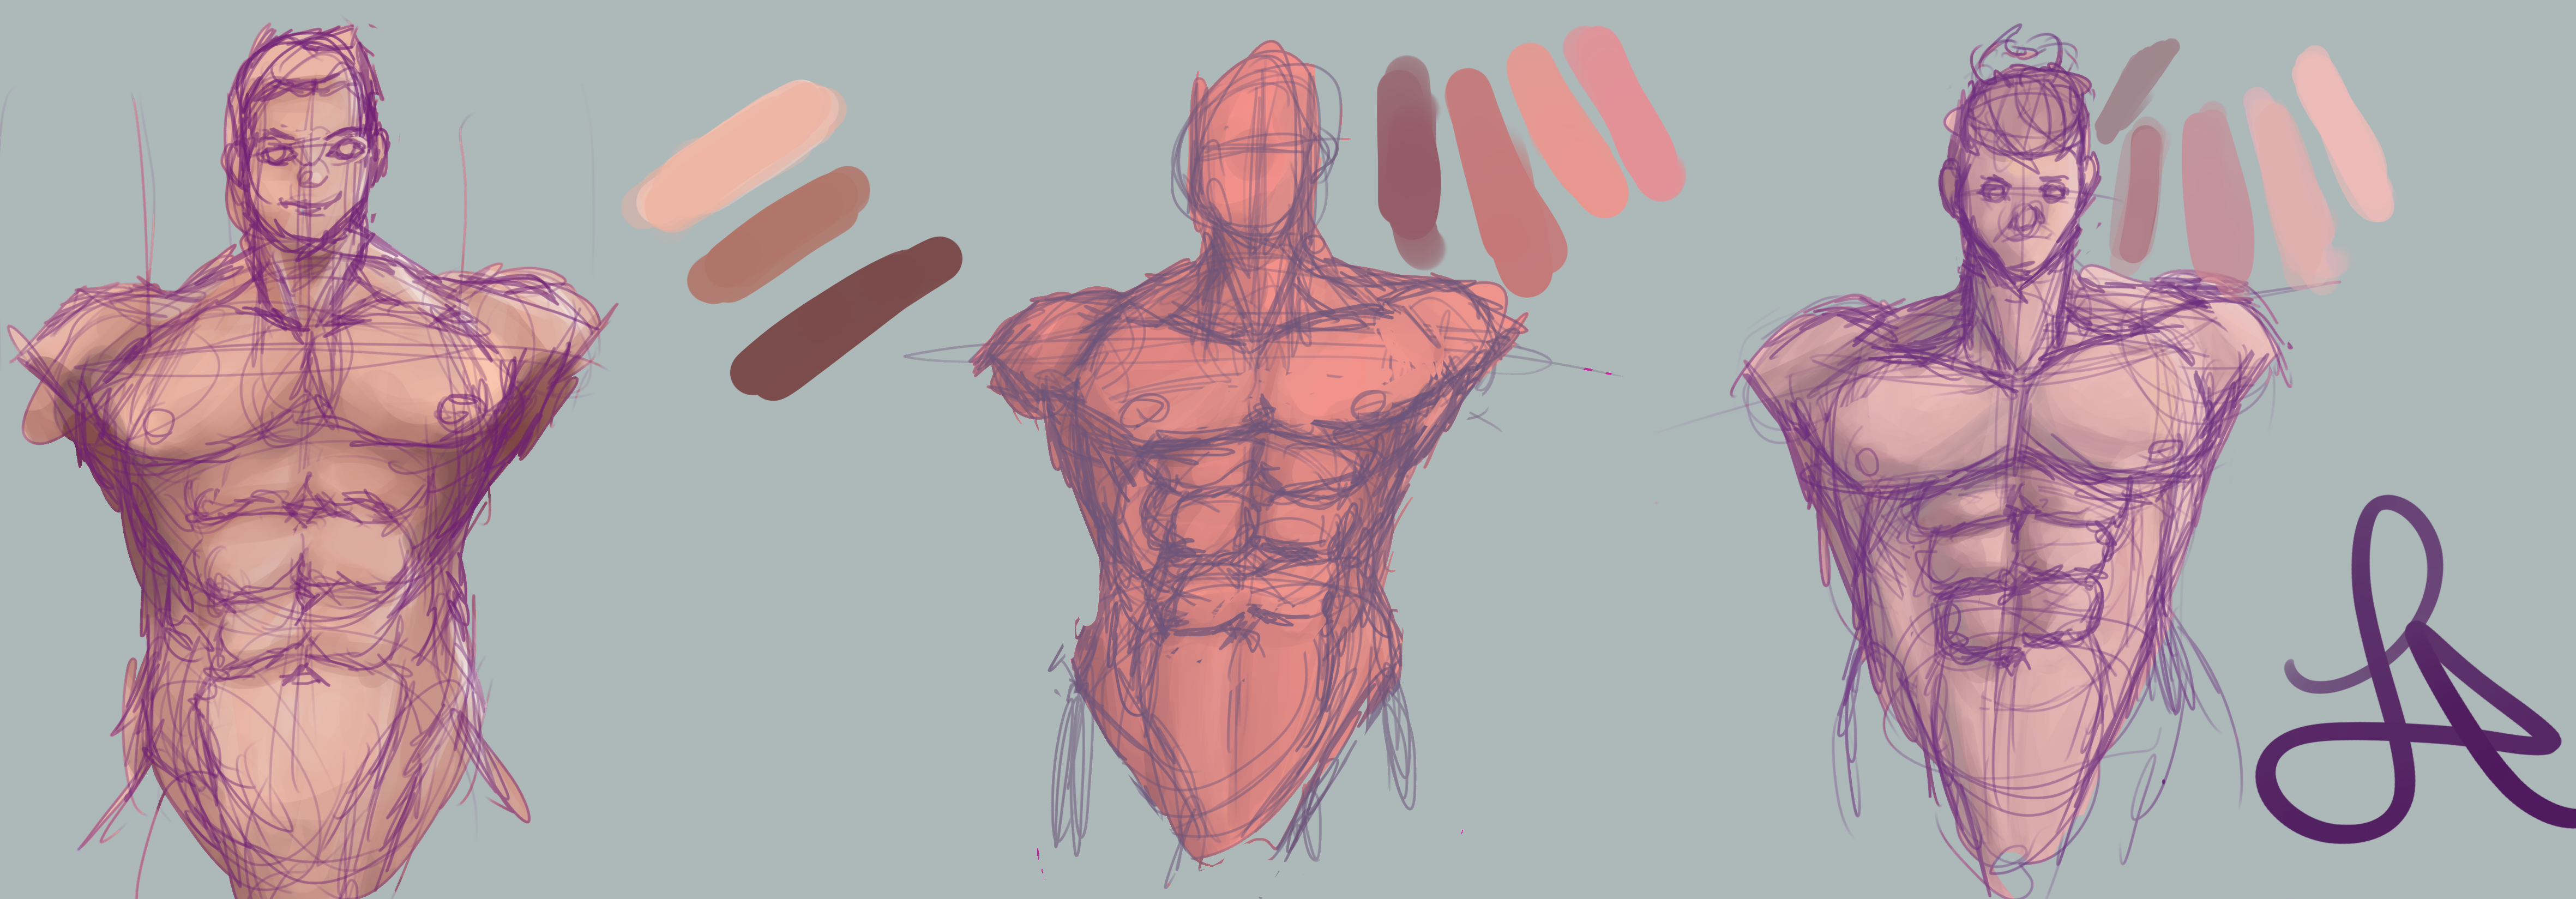 skintones and anotmy sketches